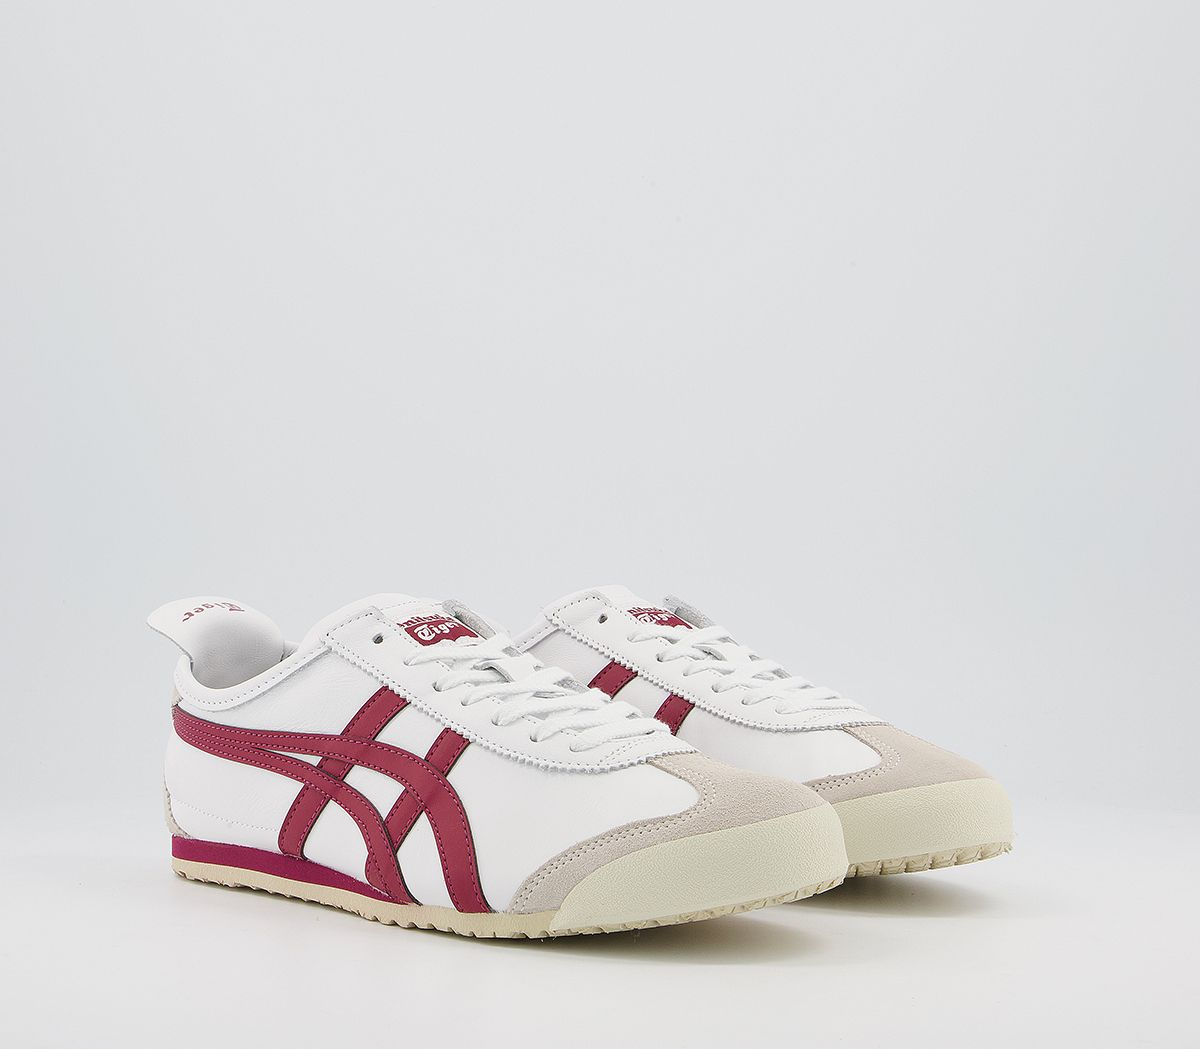 onitsuka tiger mexico 66 shoes size chart europe navy